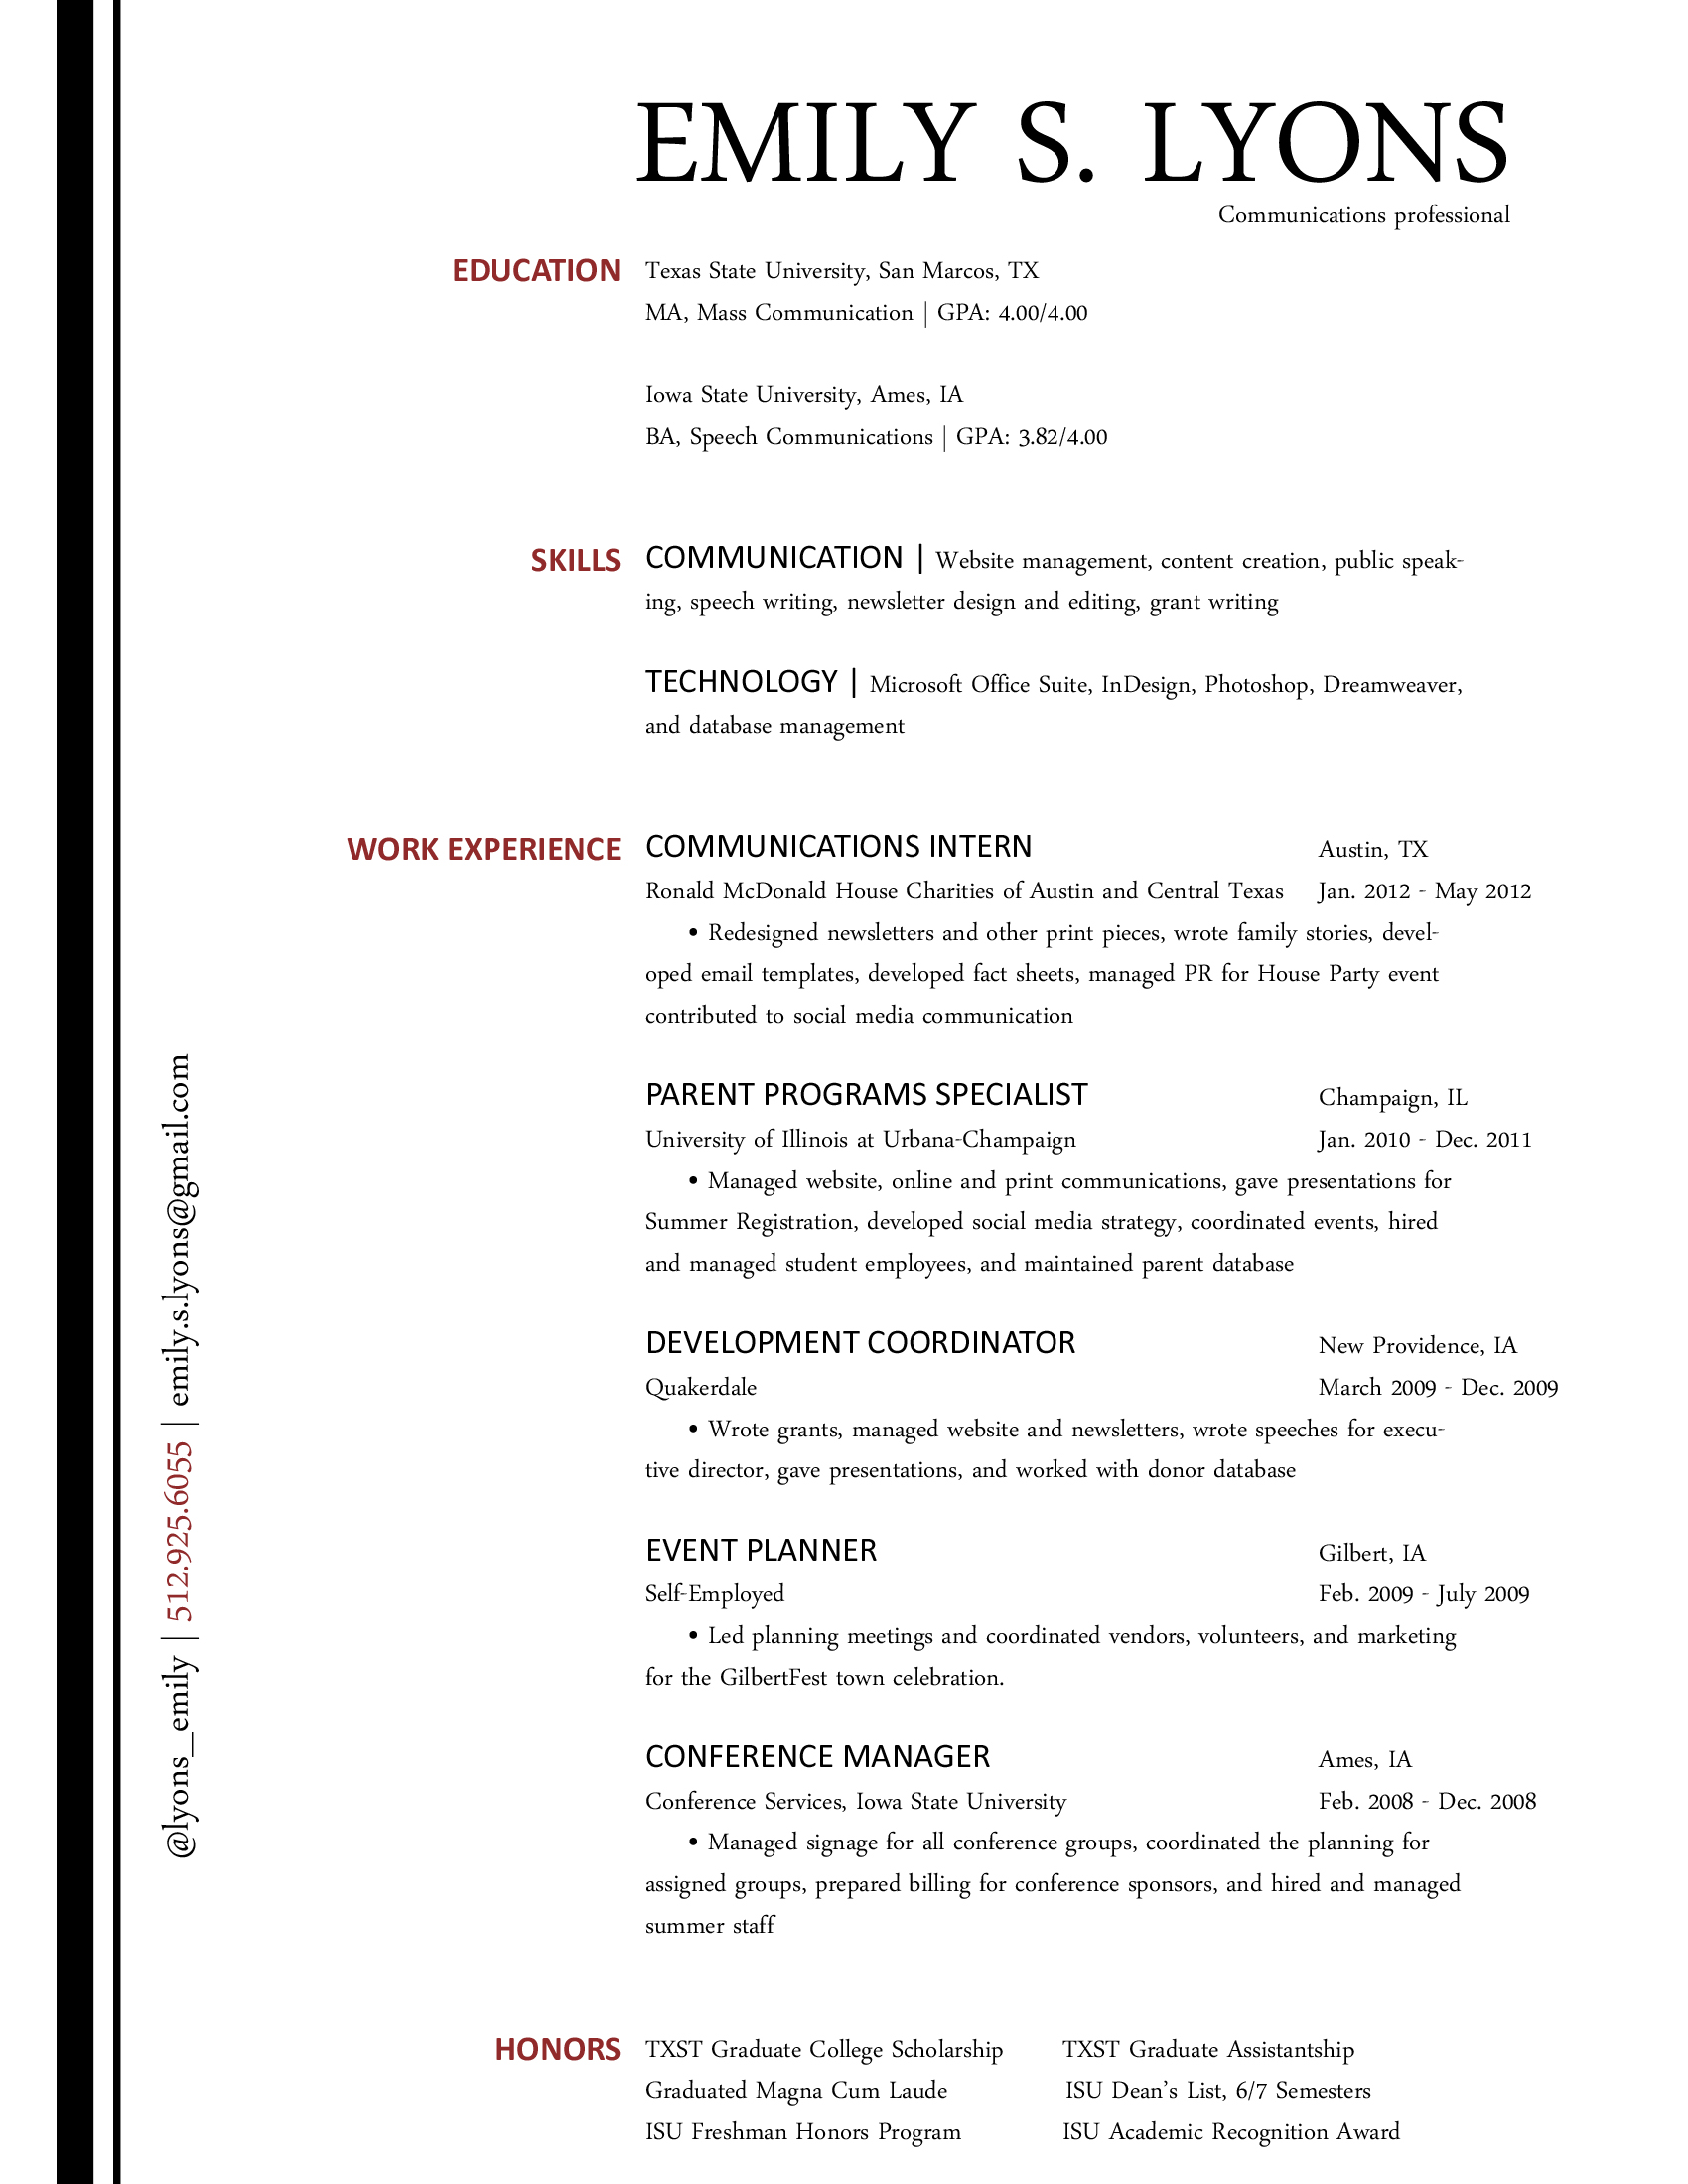 model resume promotional model resumes template model resume template model de financial modeling resume model resumes - Model Resume